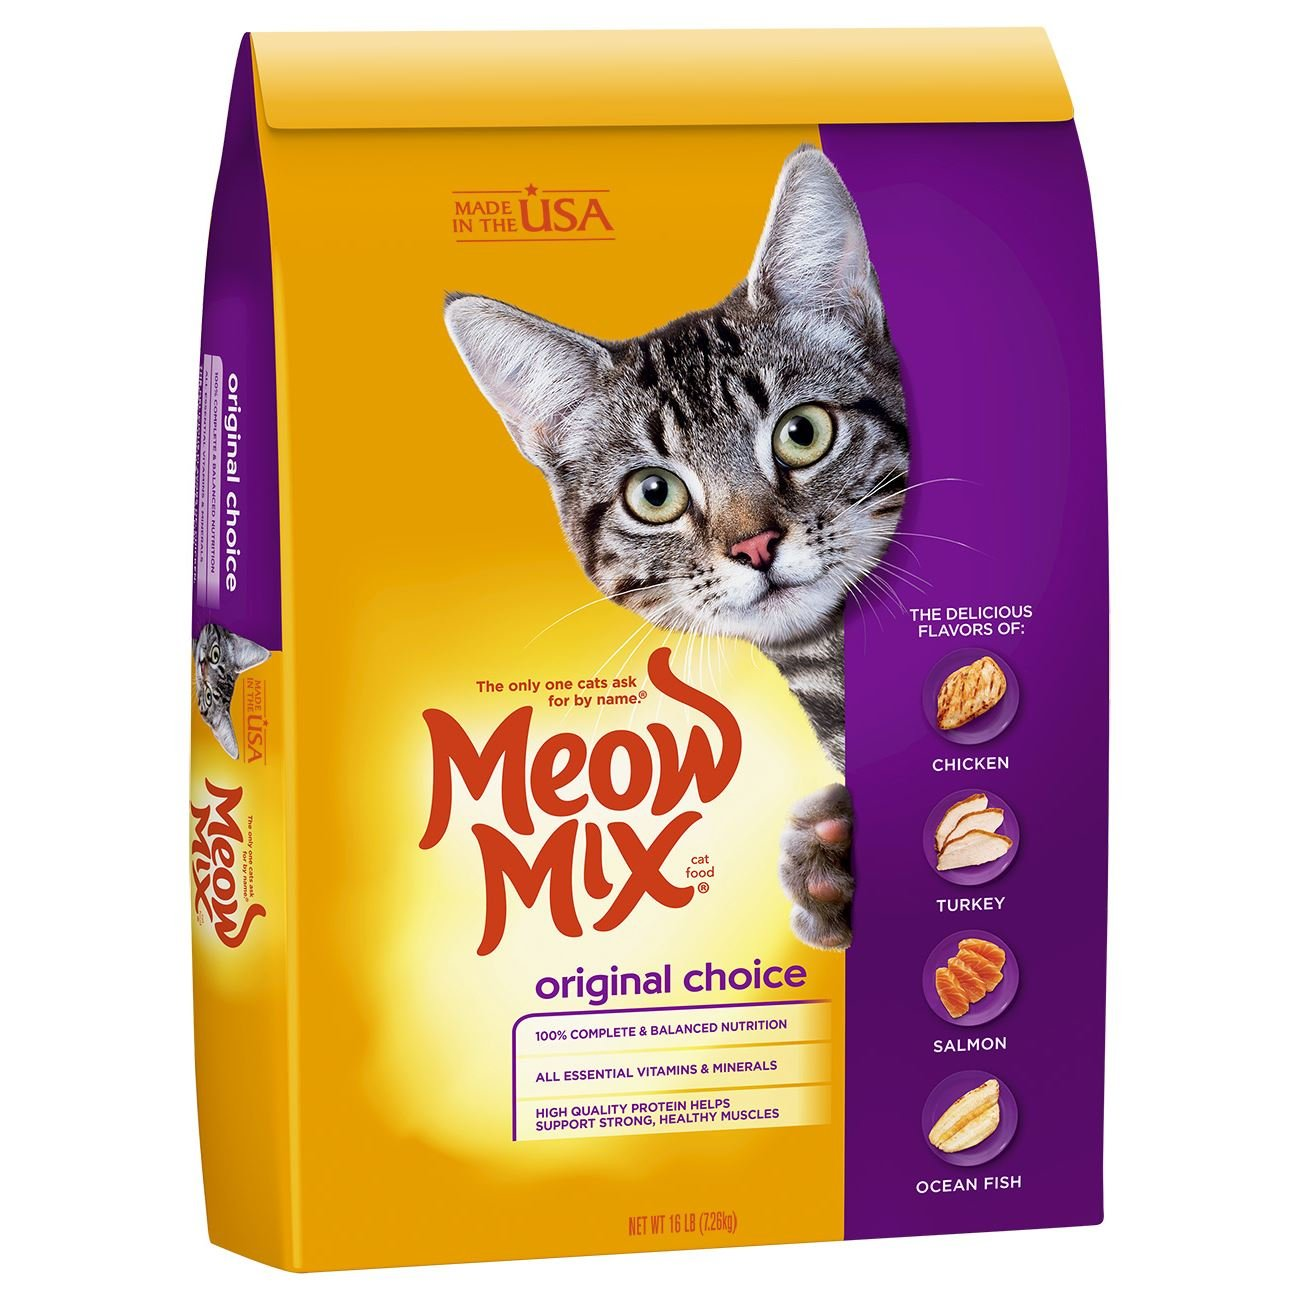 Meow Mix Original Choice Dry Cat Food, 16 Pounds by Meow Mix